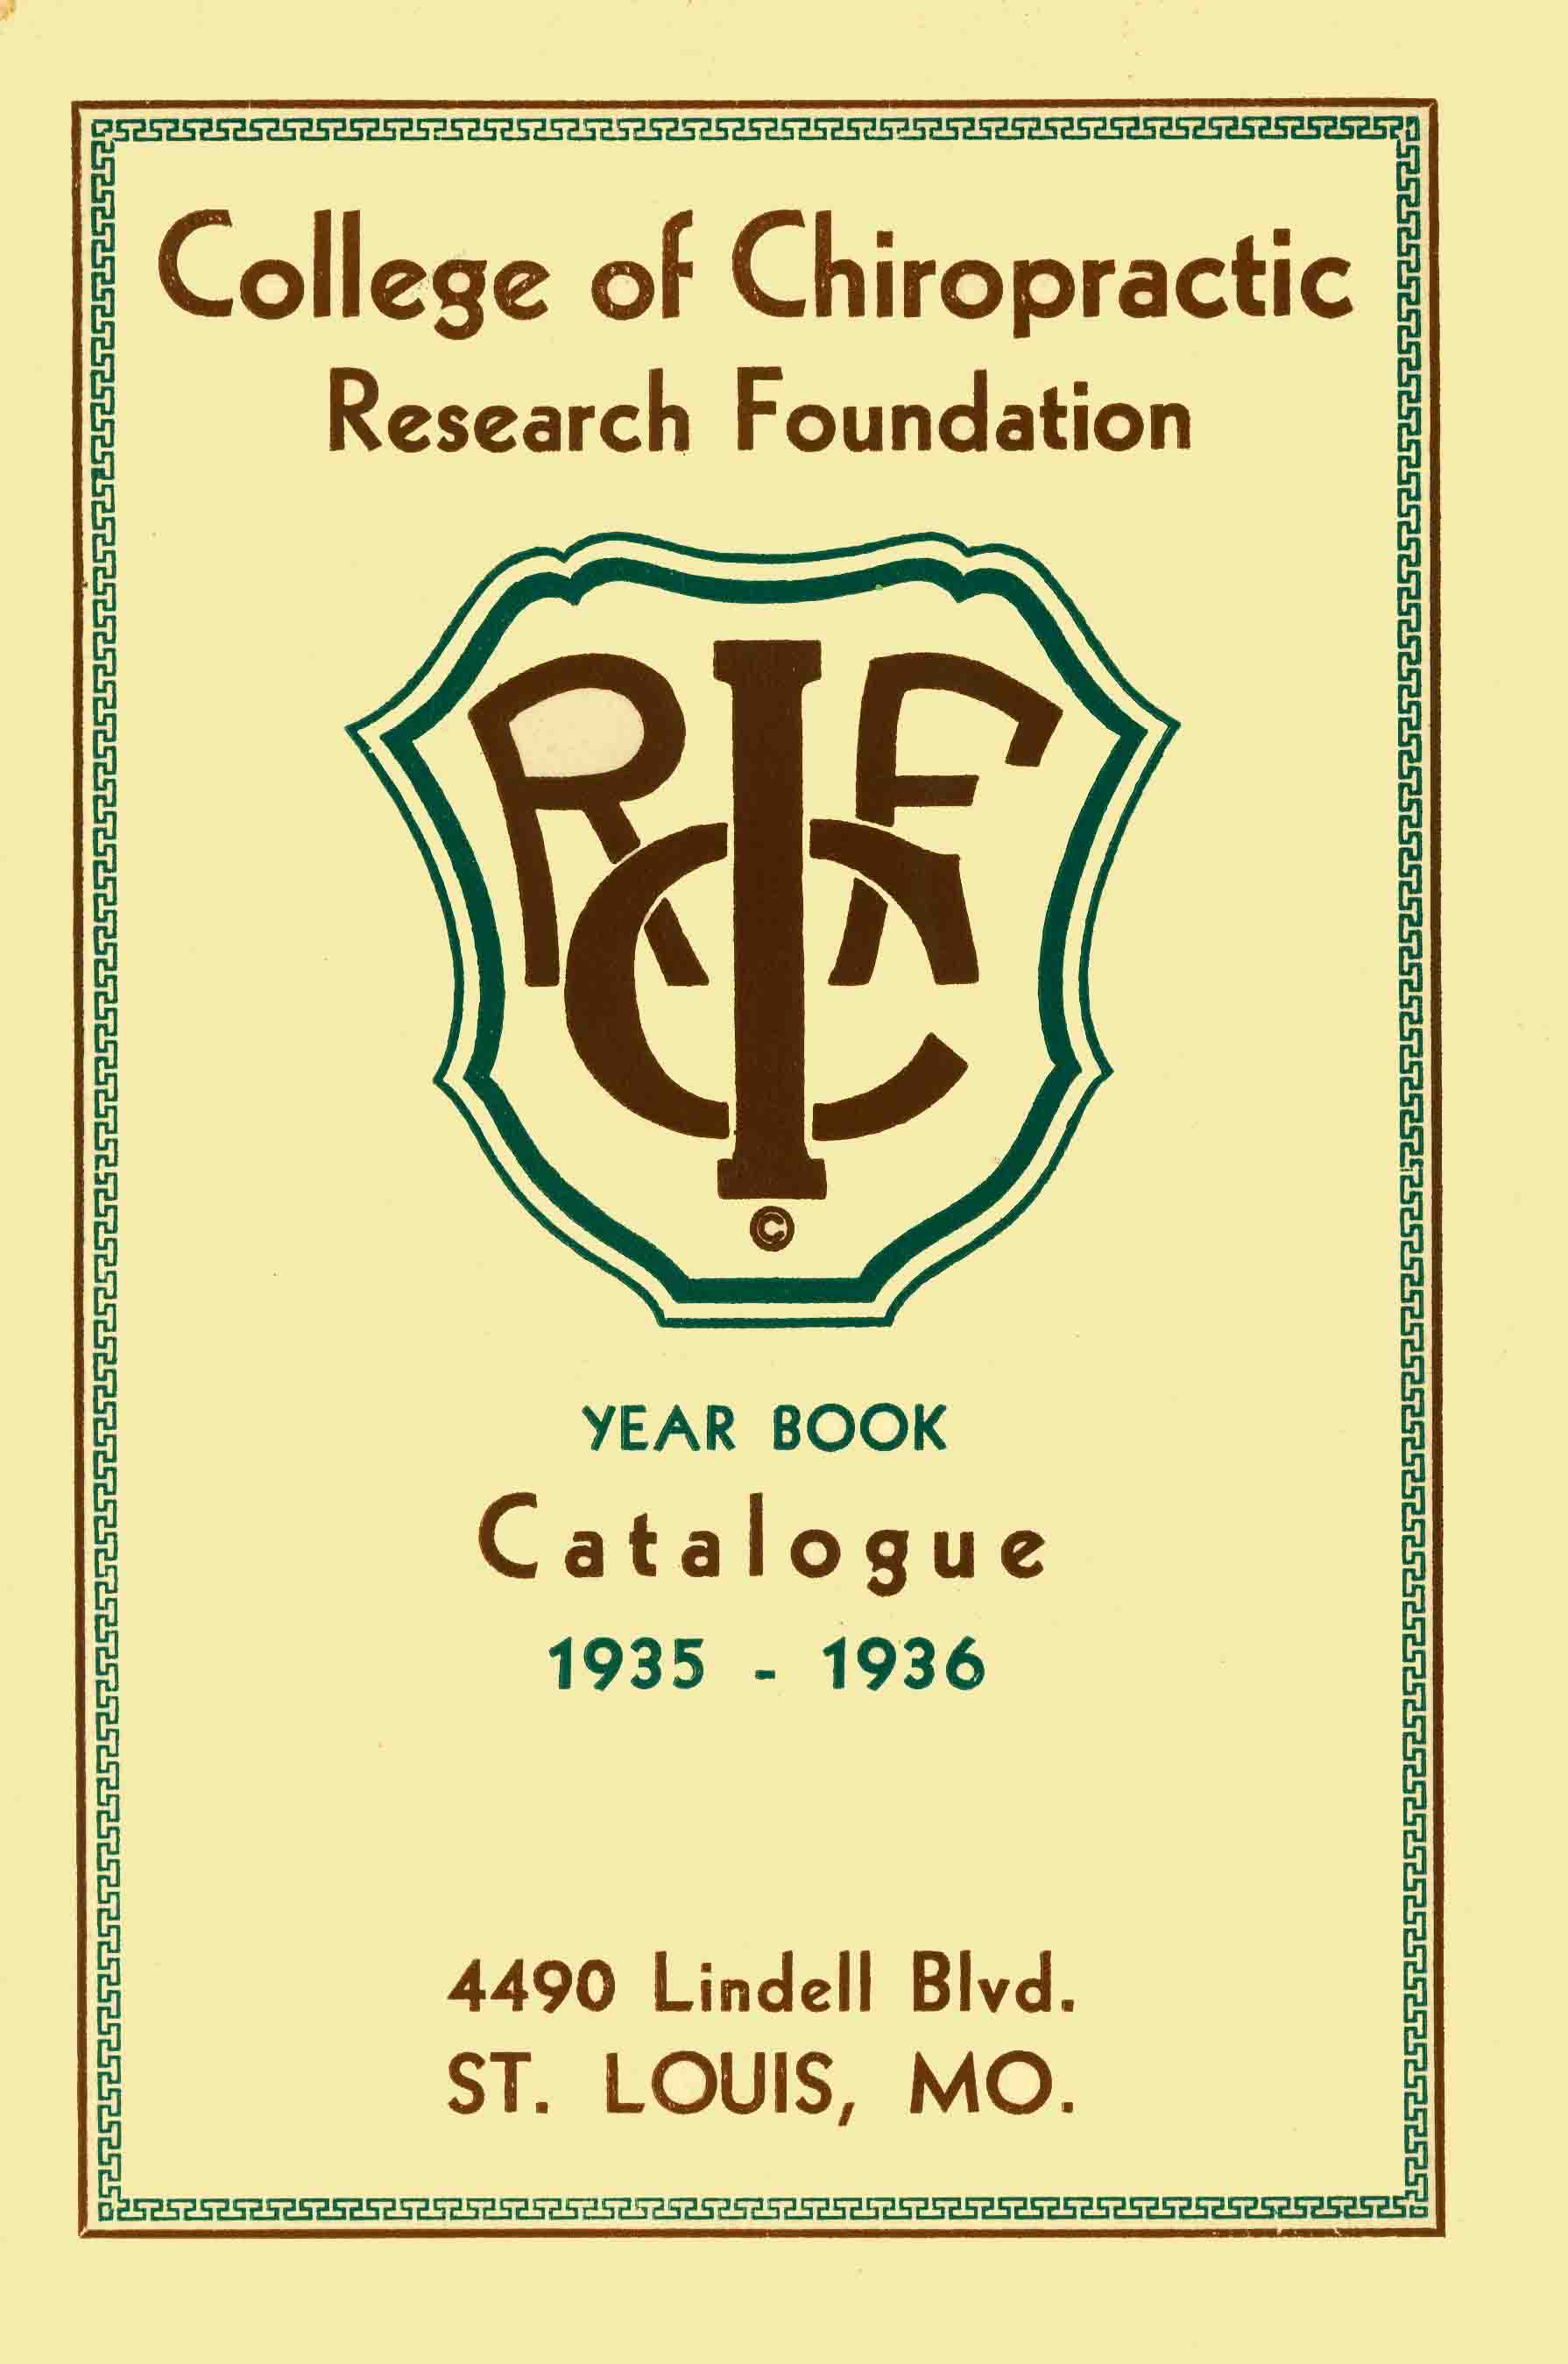 ICRF 1935-36 Catalog Cover